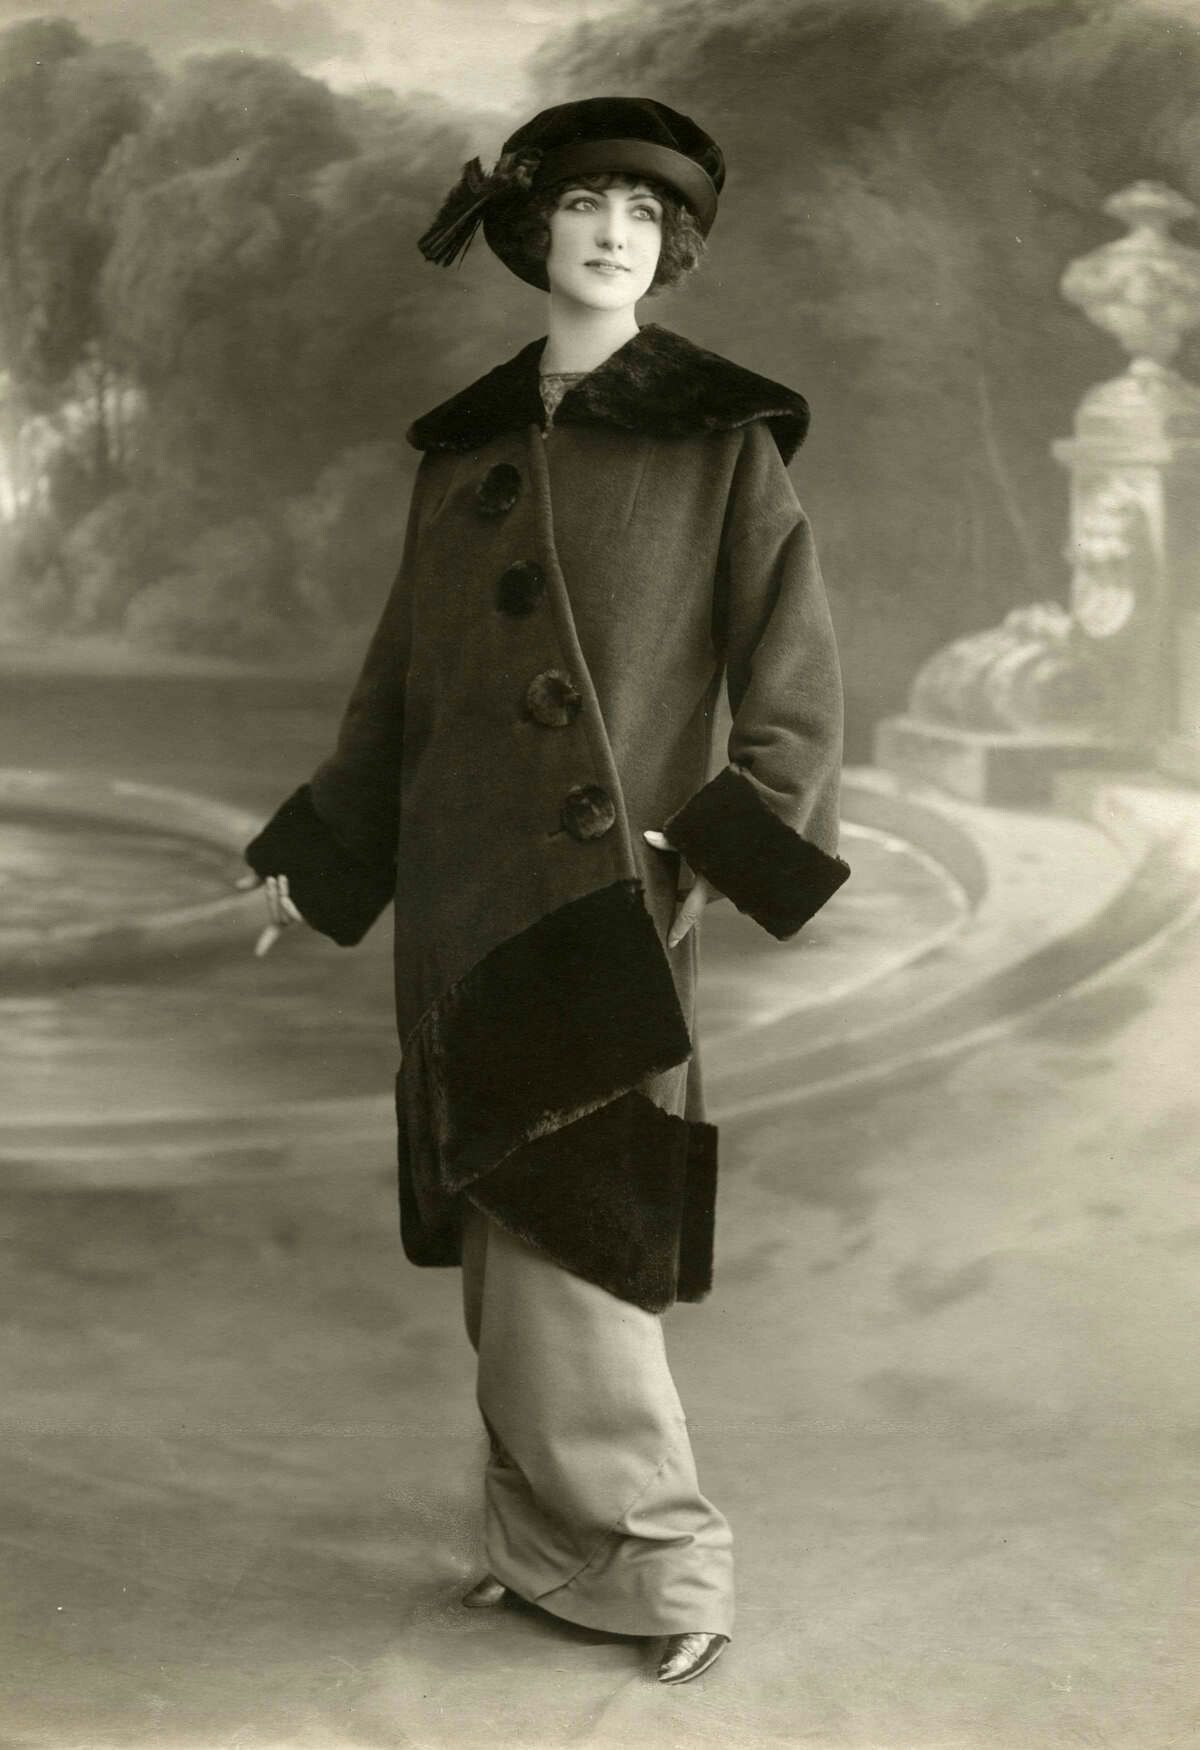 A fashionable coat from years ago vintage fashion in